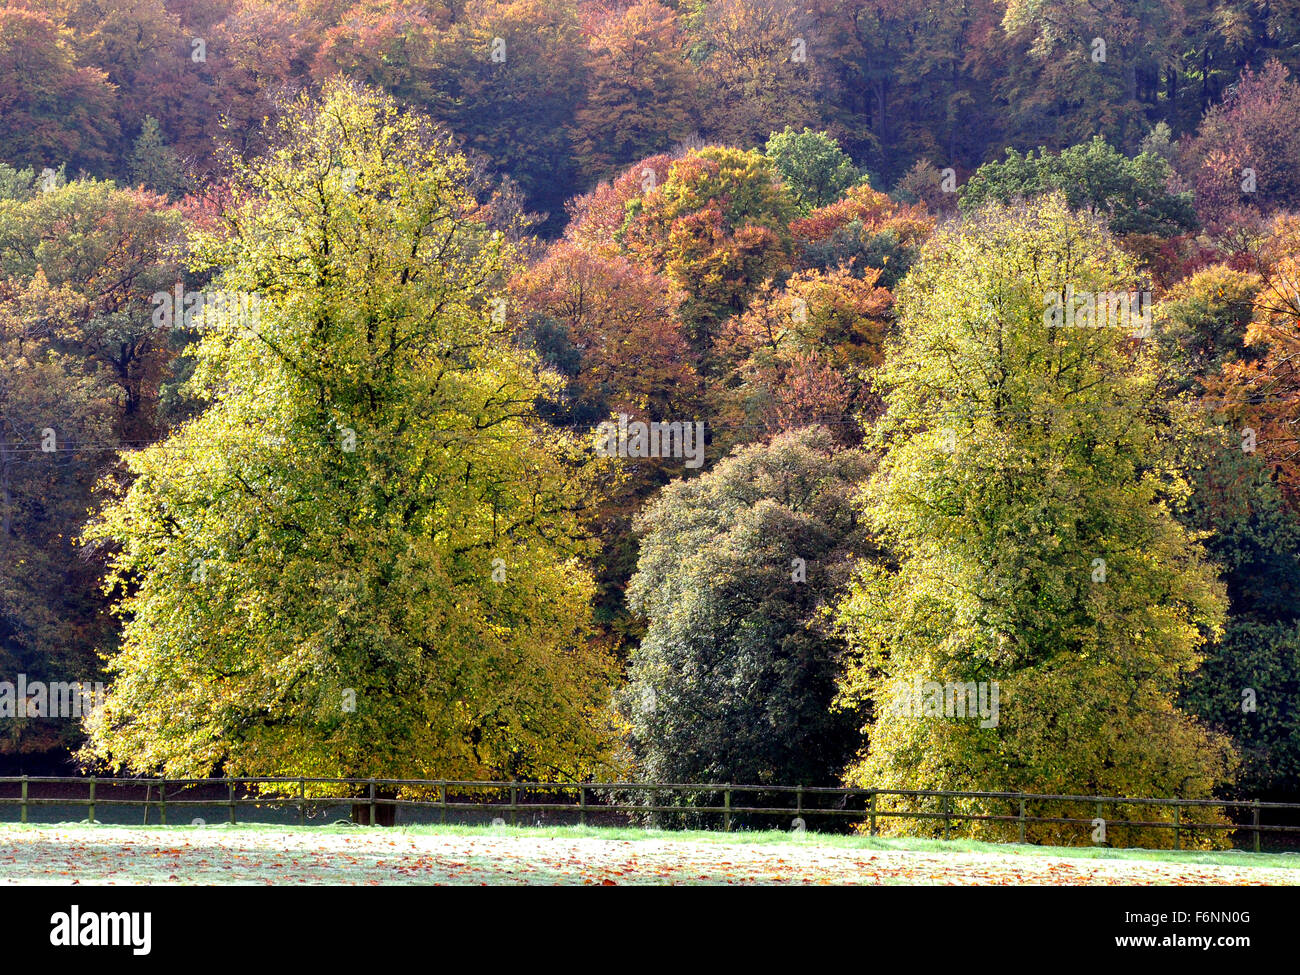 Bucks - Chiltern Hills - view - many shades of autumn in the trees - russet - brown - greens - slanting sunlight - Stock Image